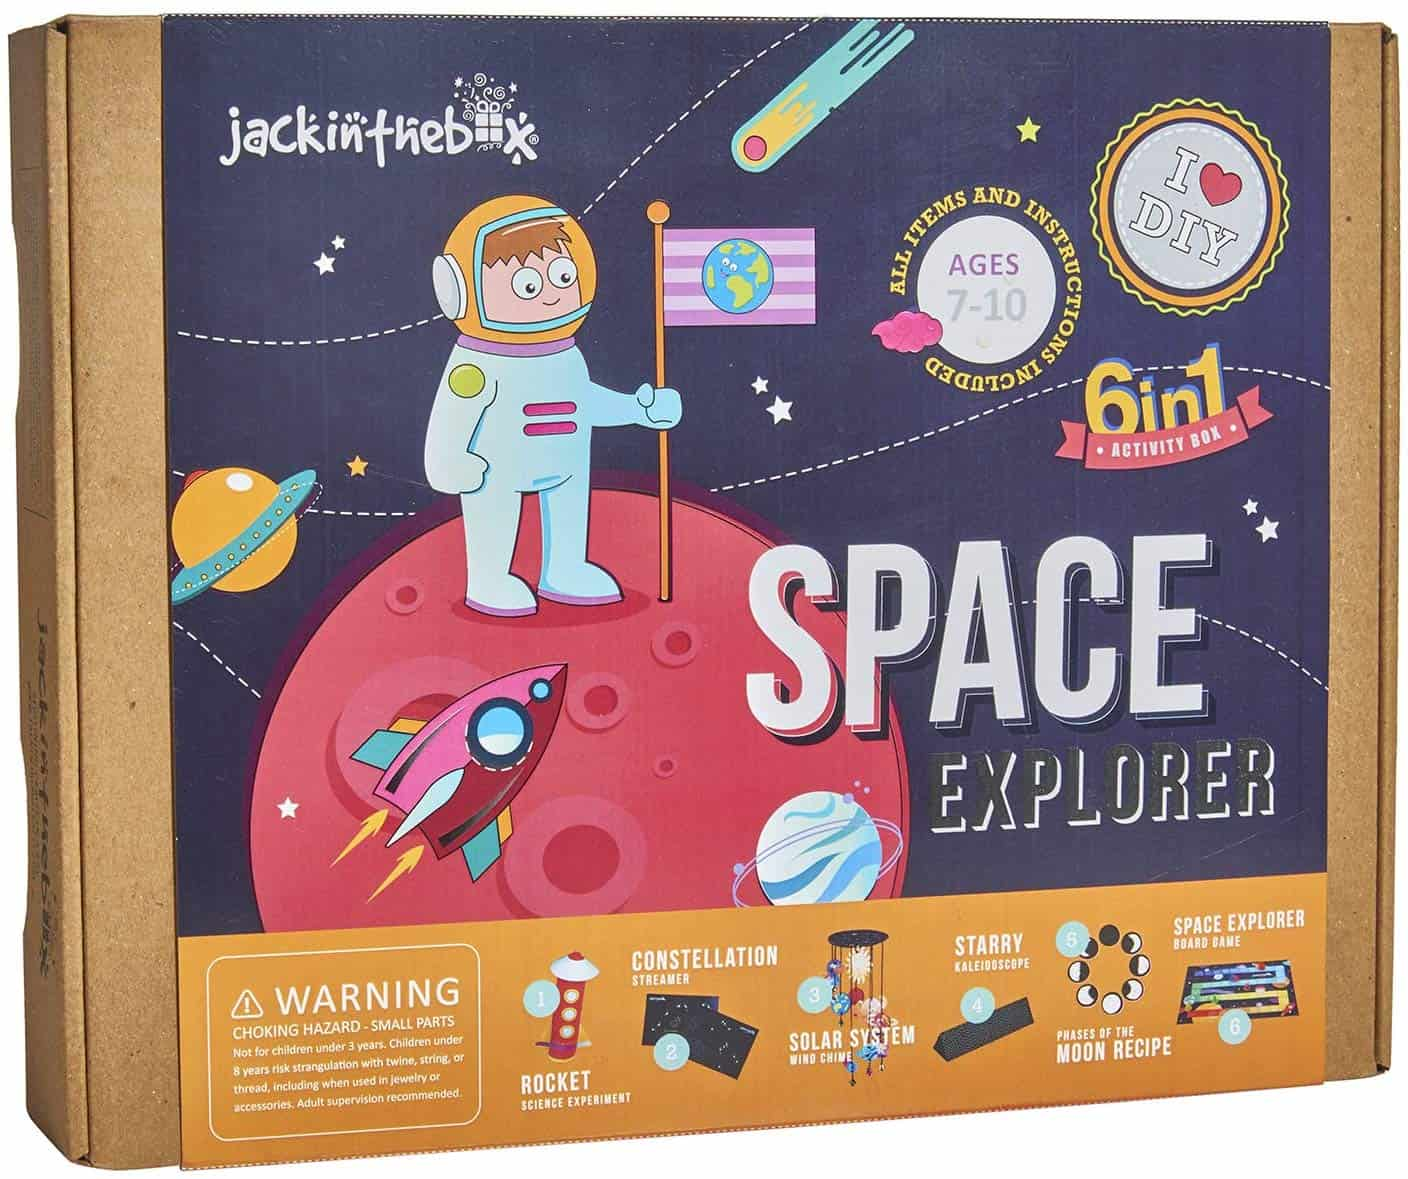 Space Themed Science Art Craft Toy